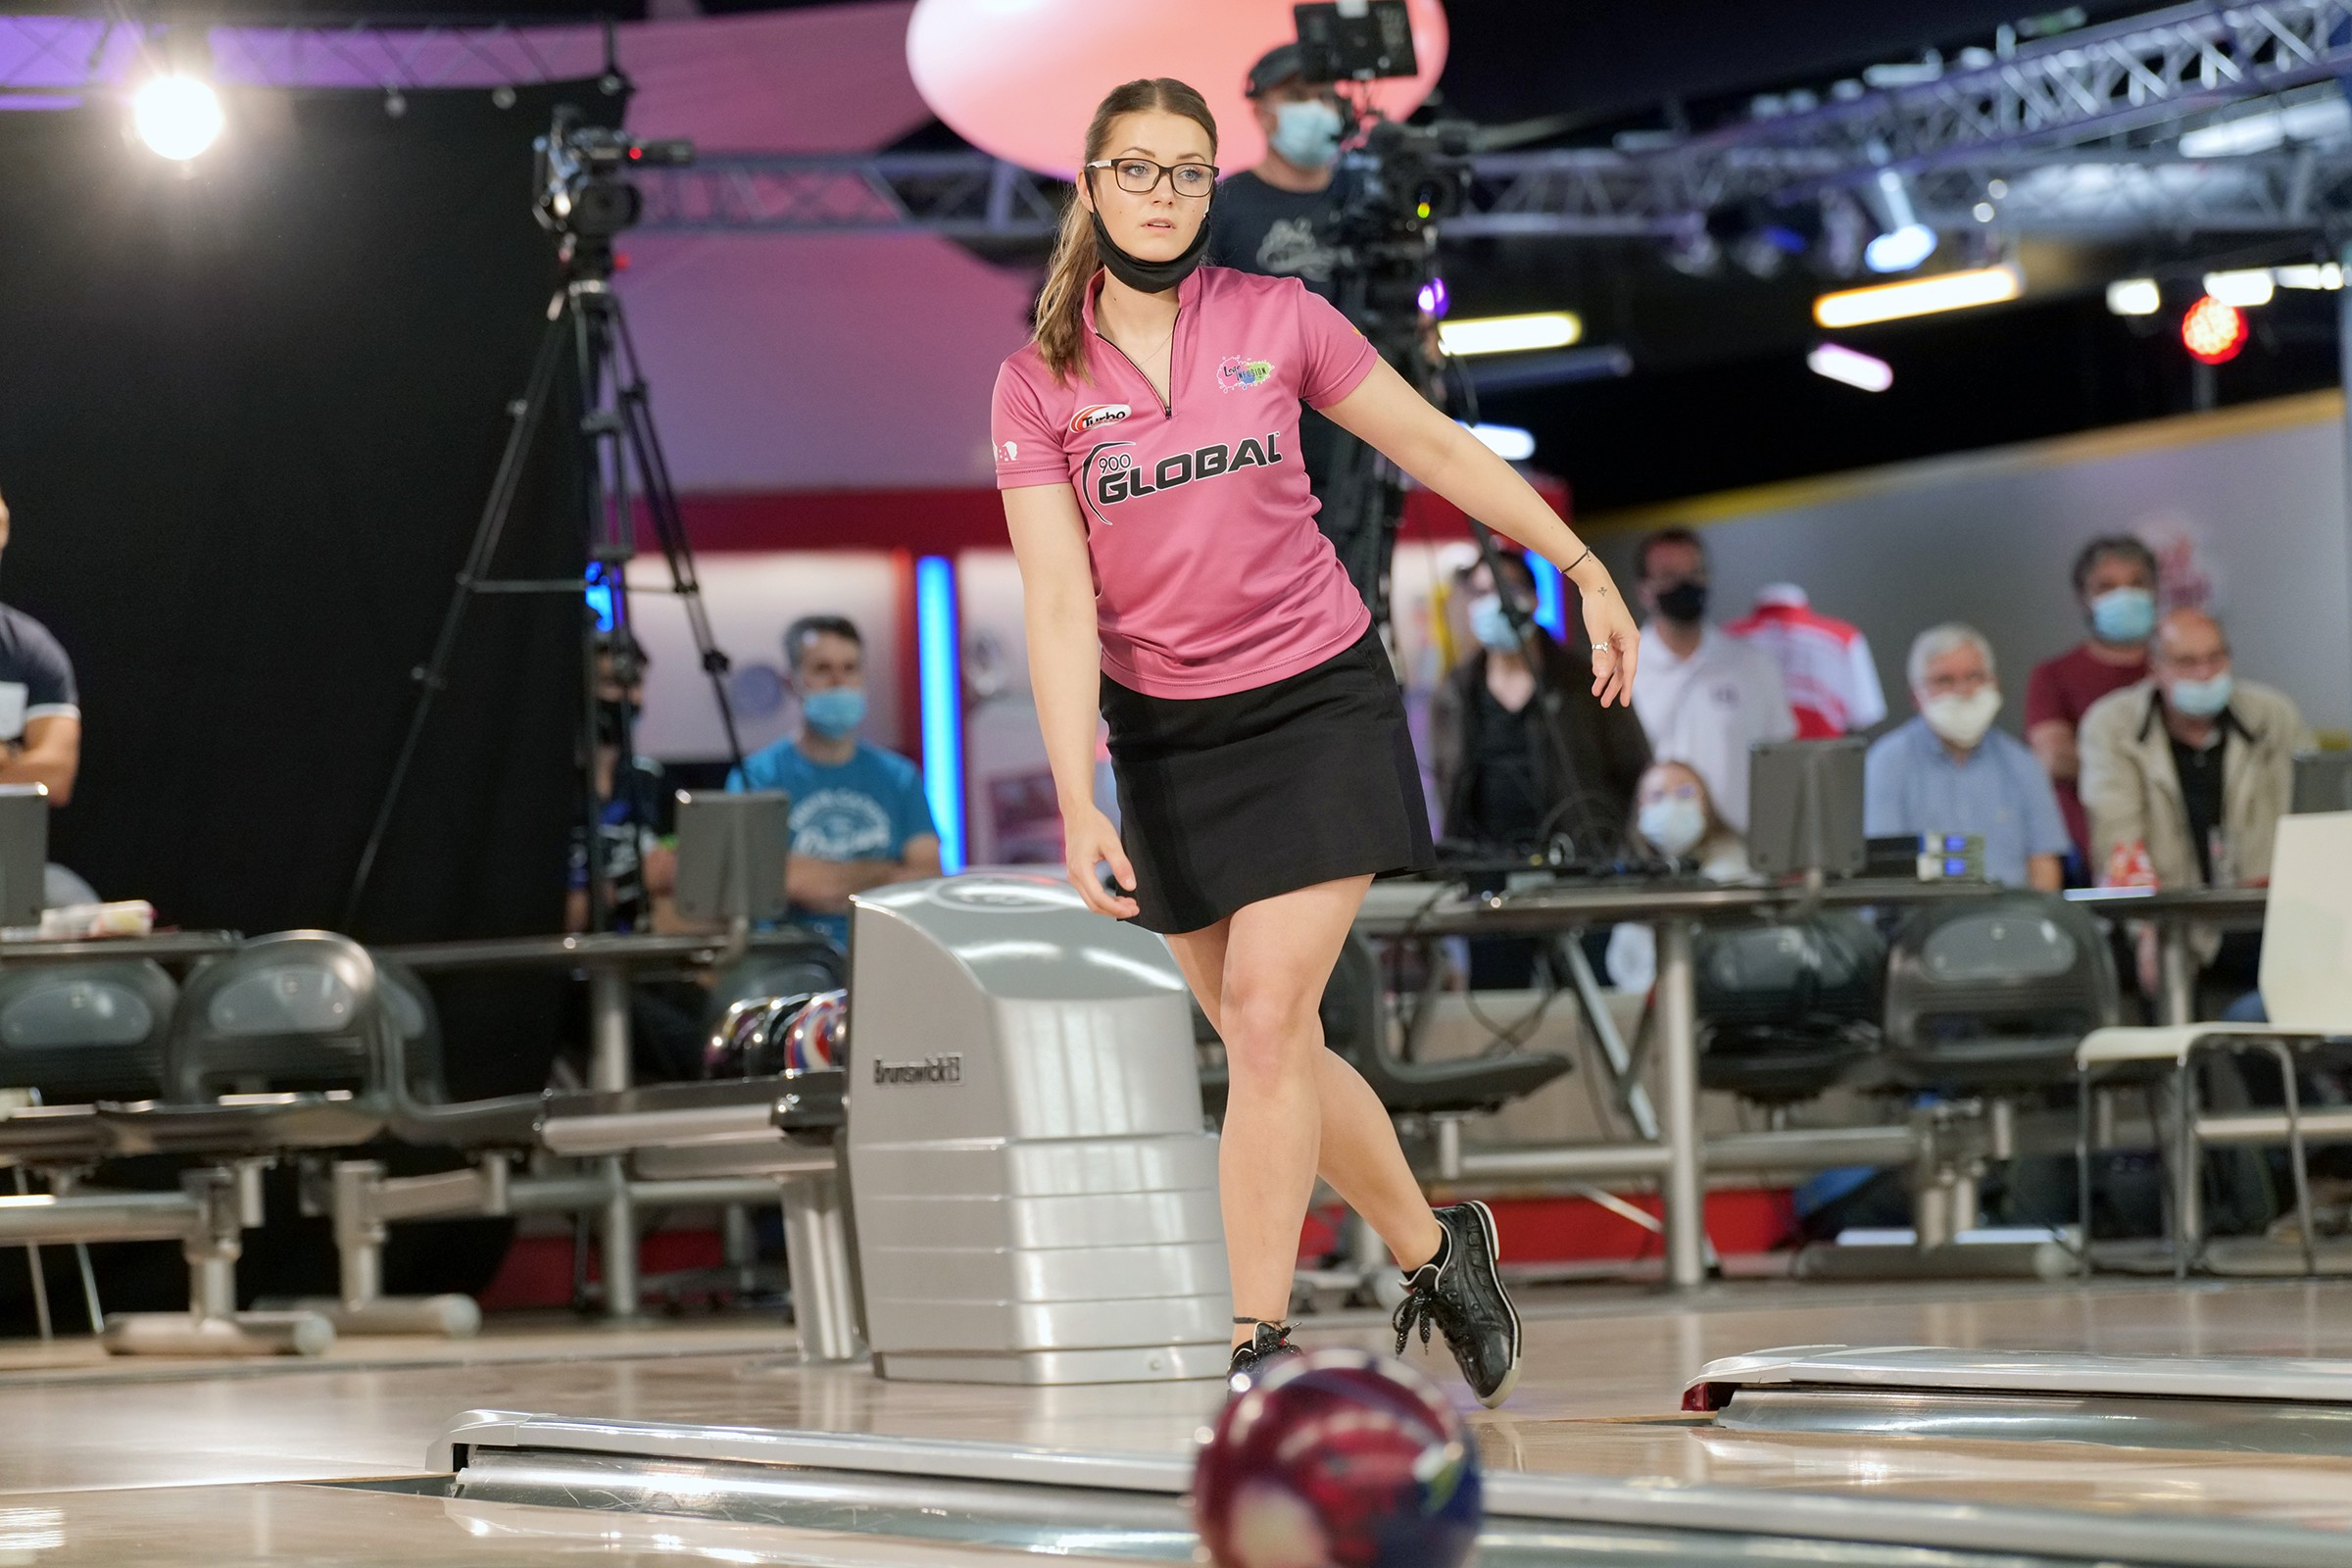 Bowling promotion tour 2020 saint lo photos ruel alain 043